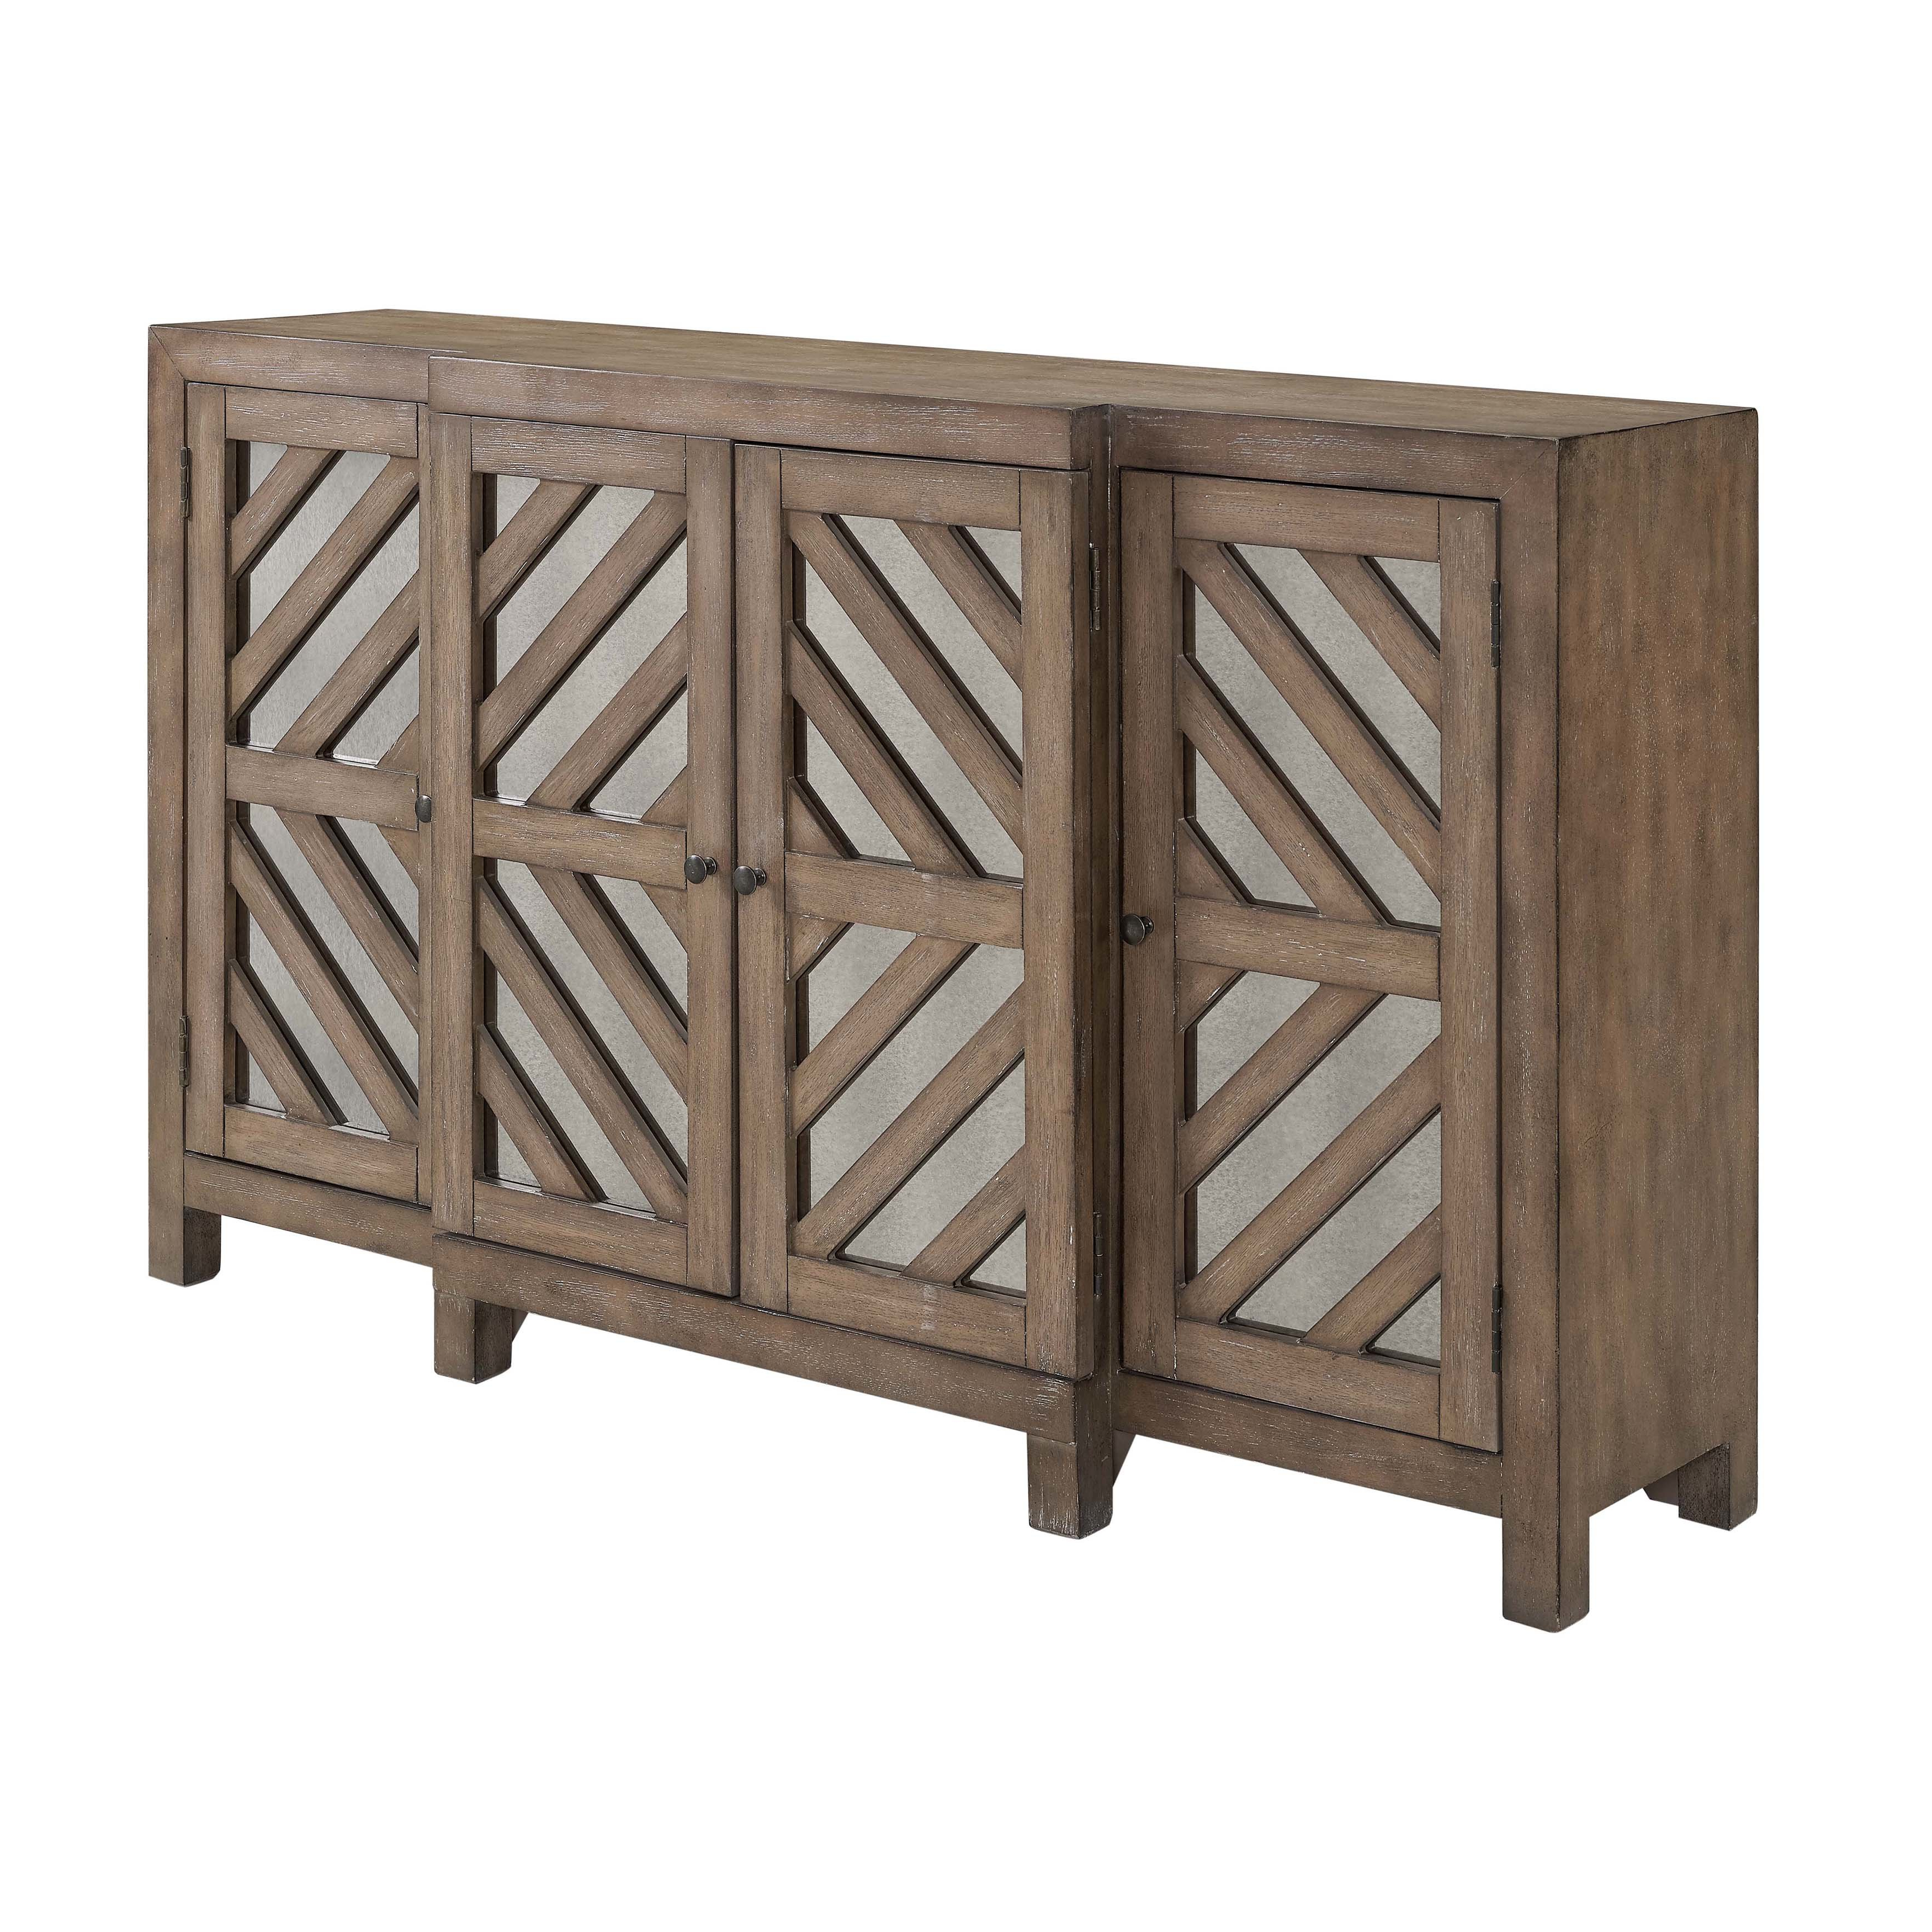 Farmhouse & Rustic Sideboards & Buffets | Birch Lane Pertaining To Medium Cherry Buffets With Wood Top (View 13 of 20)